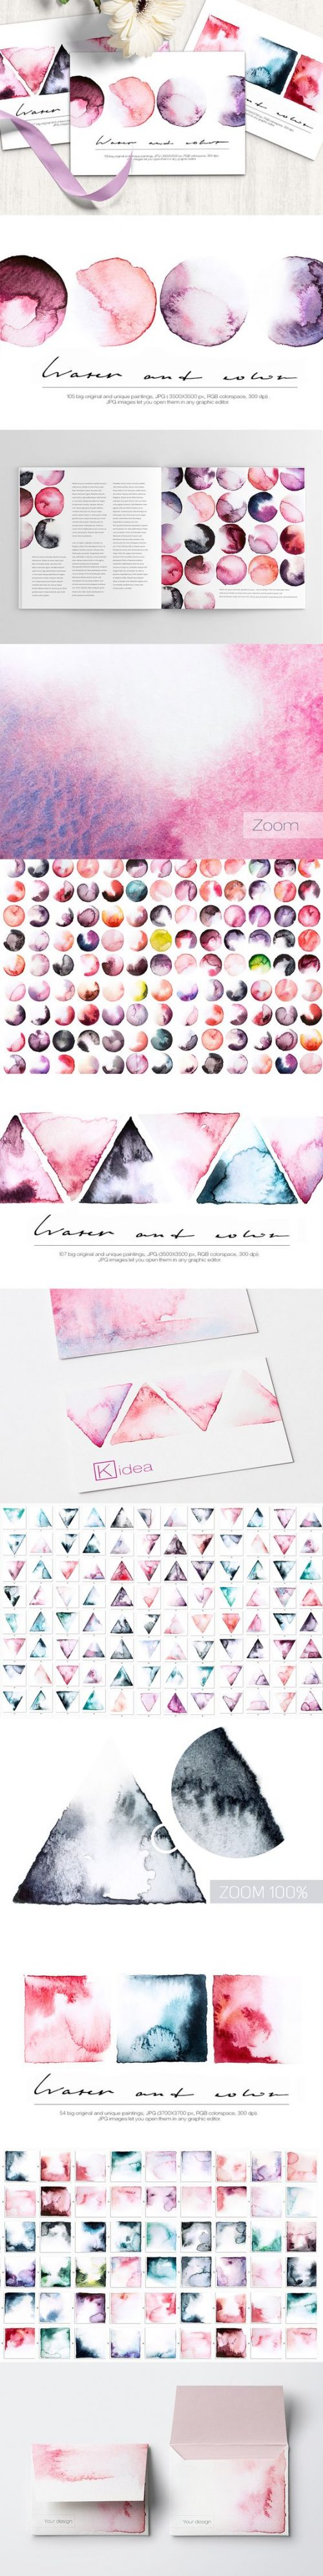 Water Color Design and Branding